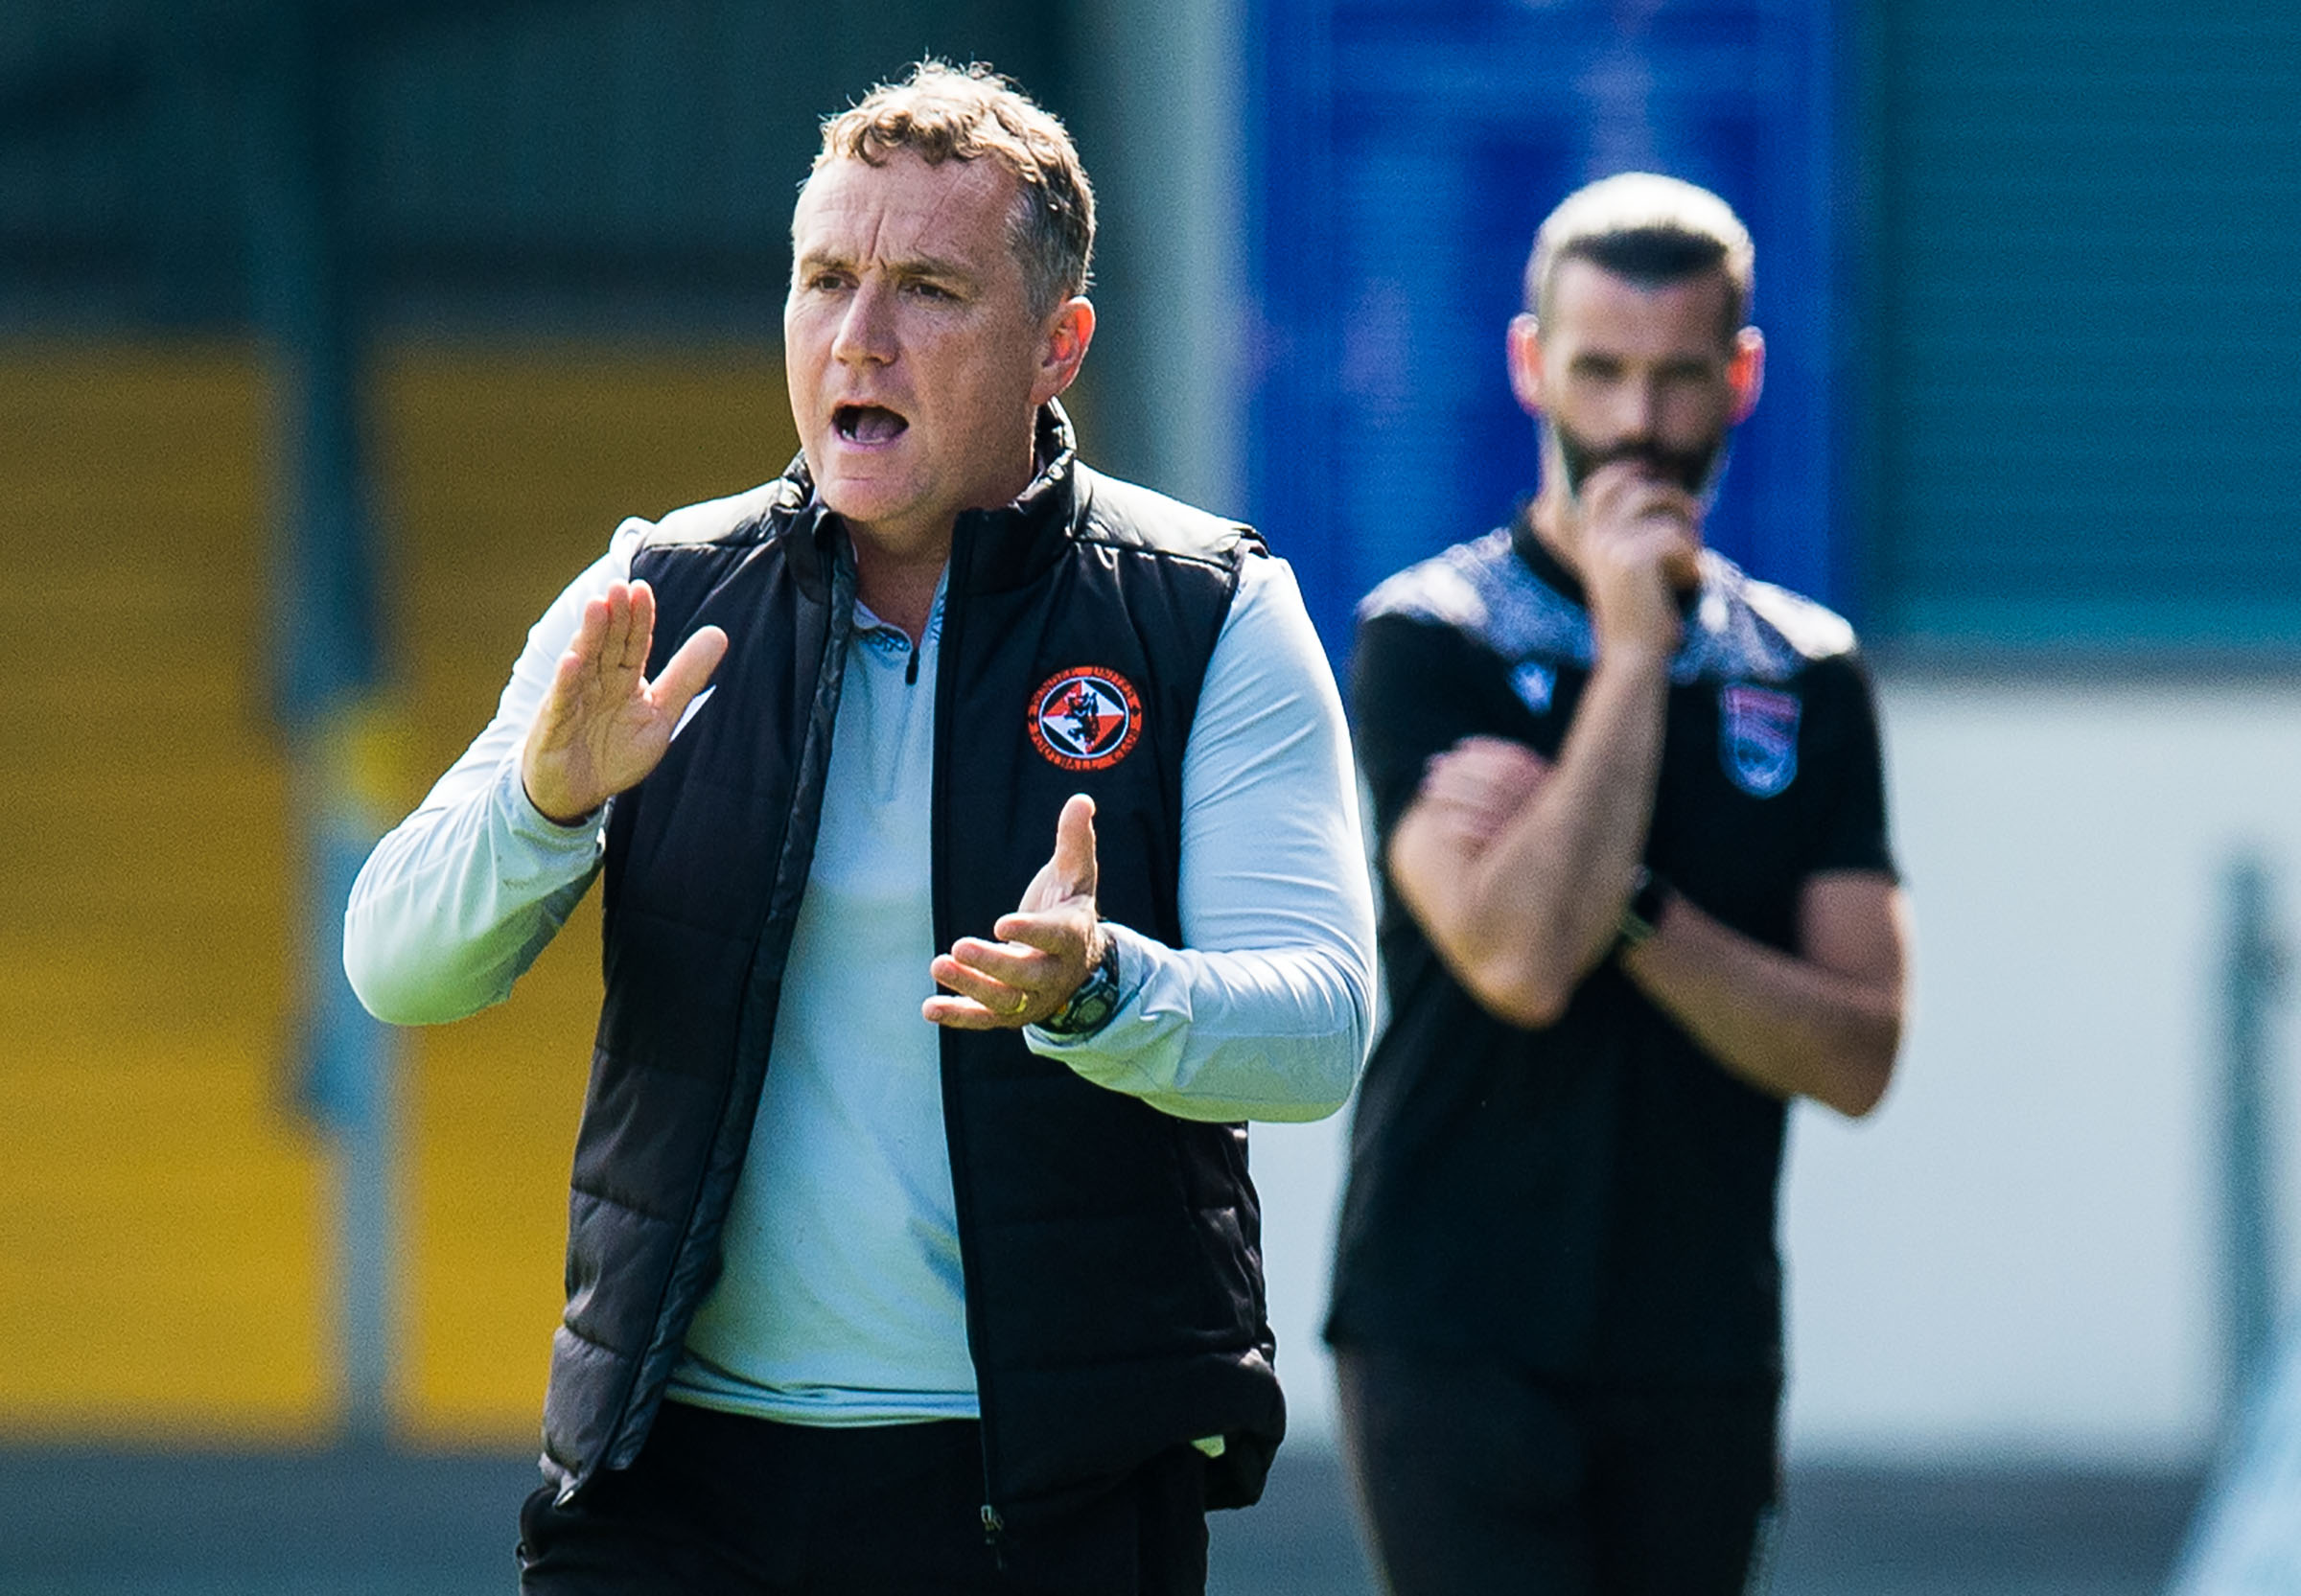 Dundee United manager Micky Mellon encourages his troops from the touchline.